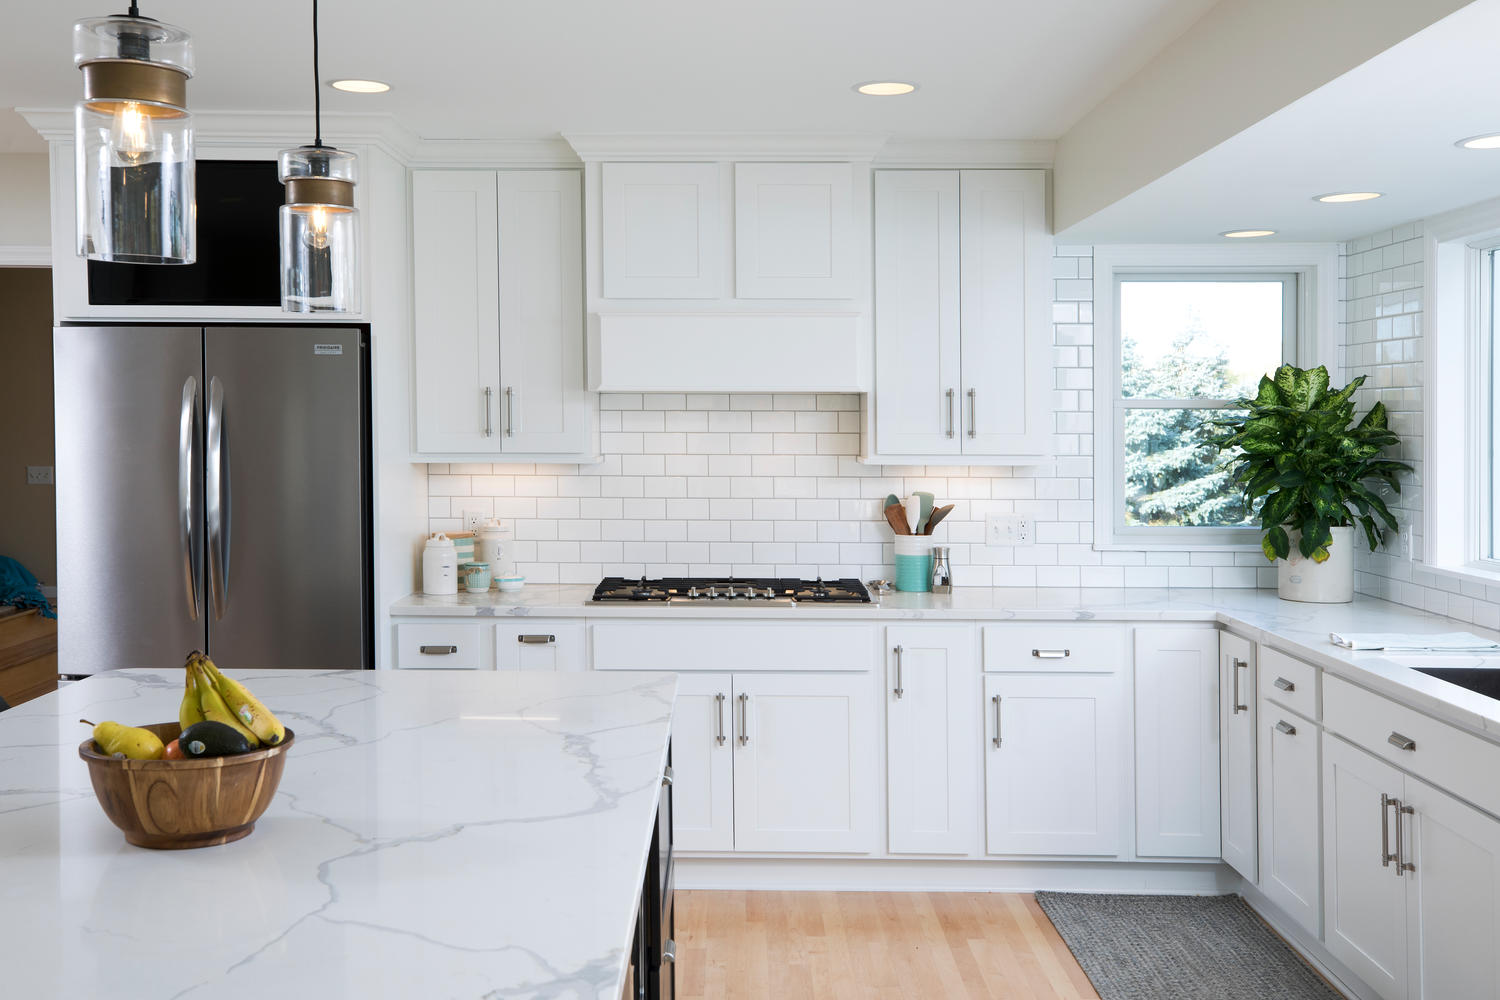 Kitchen with white cabinetry and quartz countertops